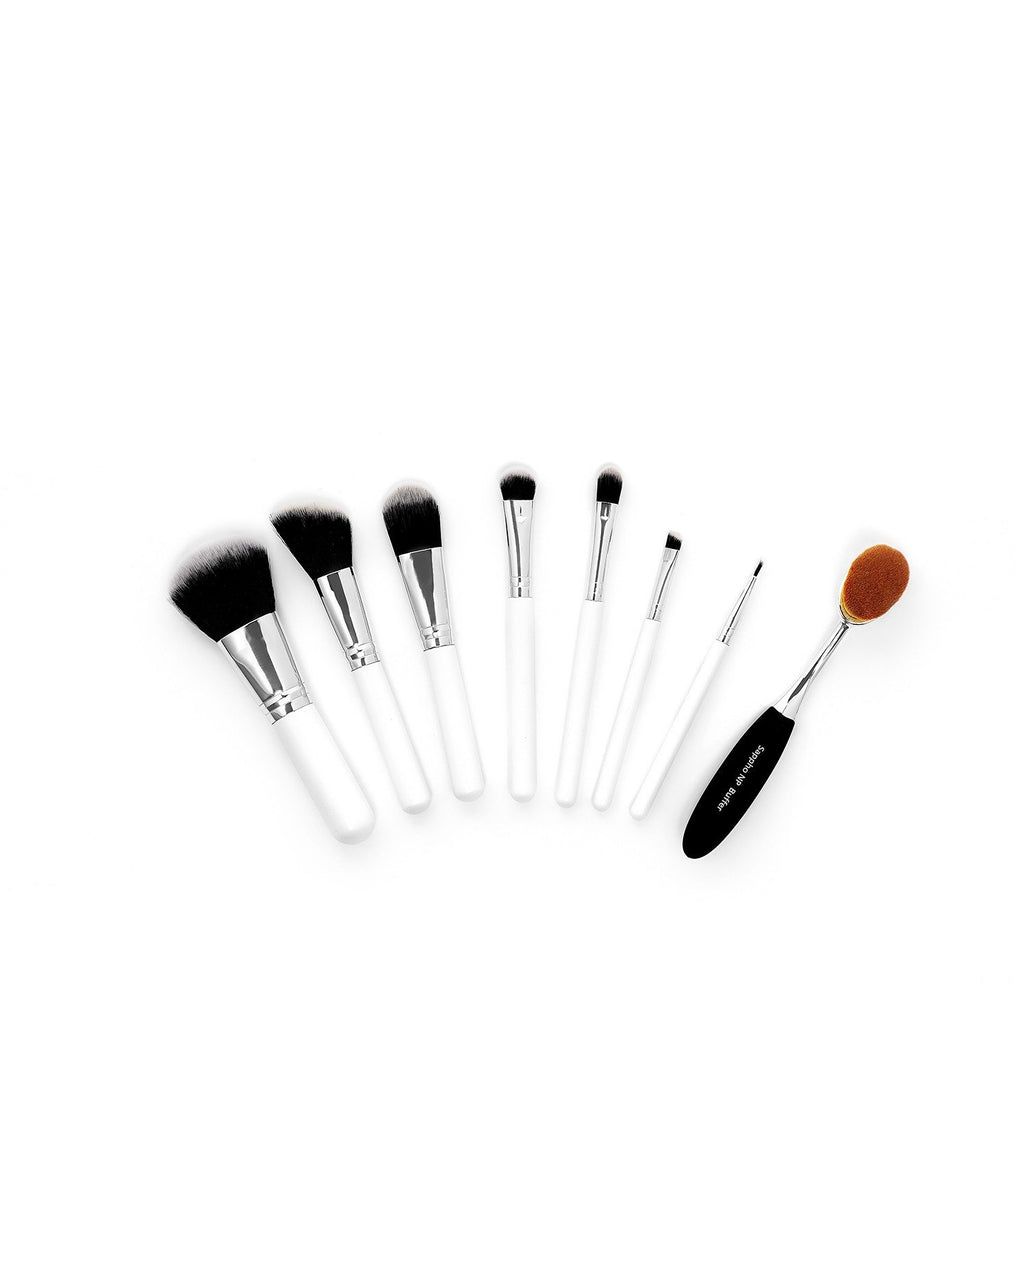 Brush set   Cruelty free